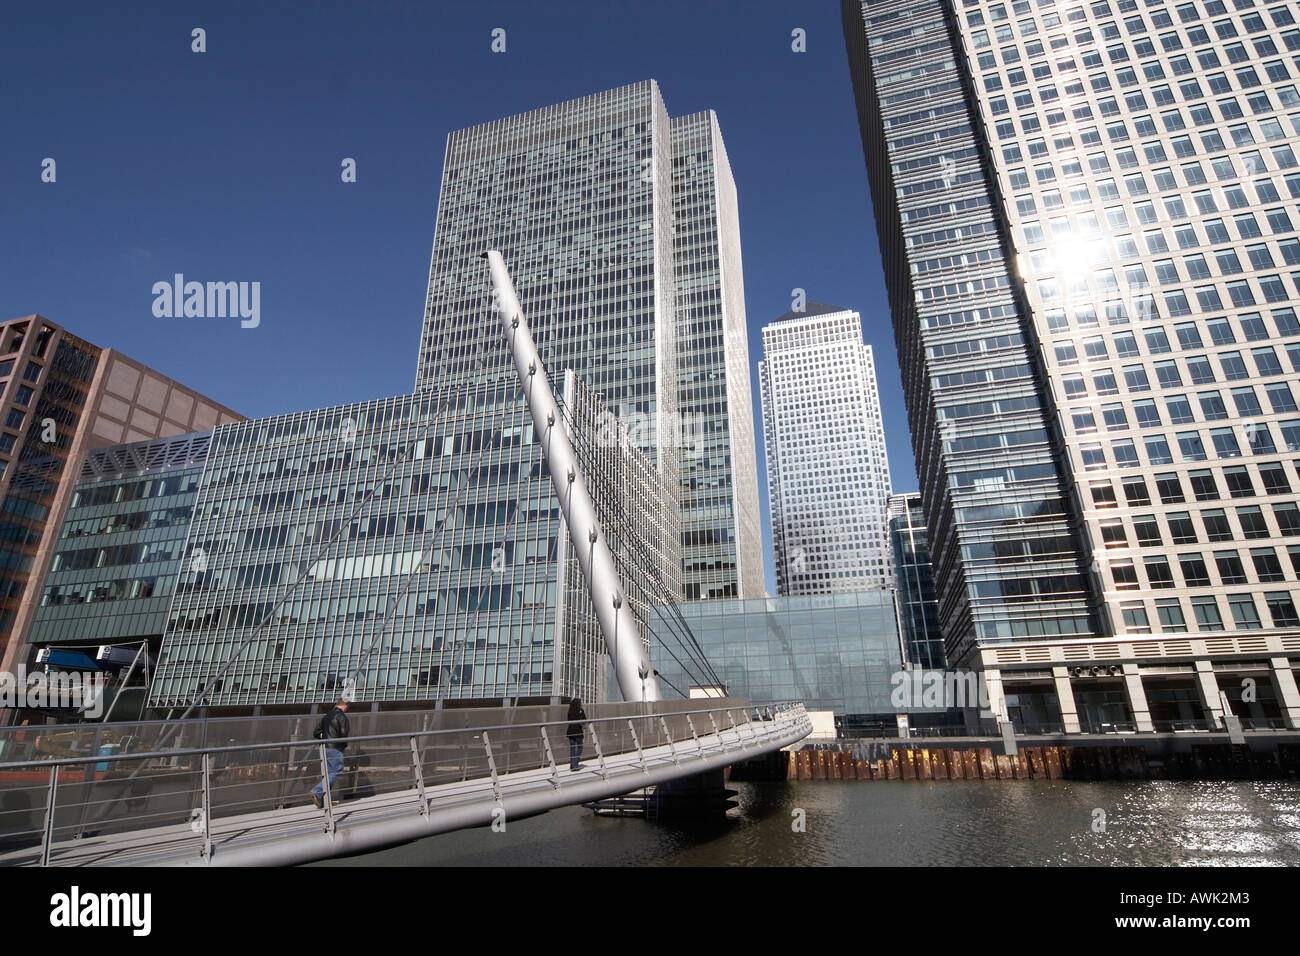 Steel Glass Buildings : Canary wharf tall modern office steel glass skyscraper